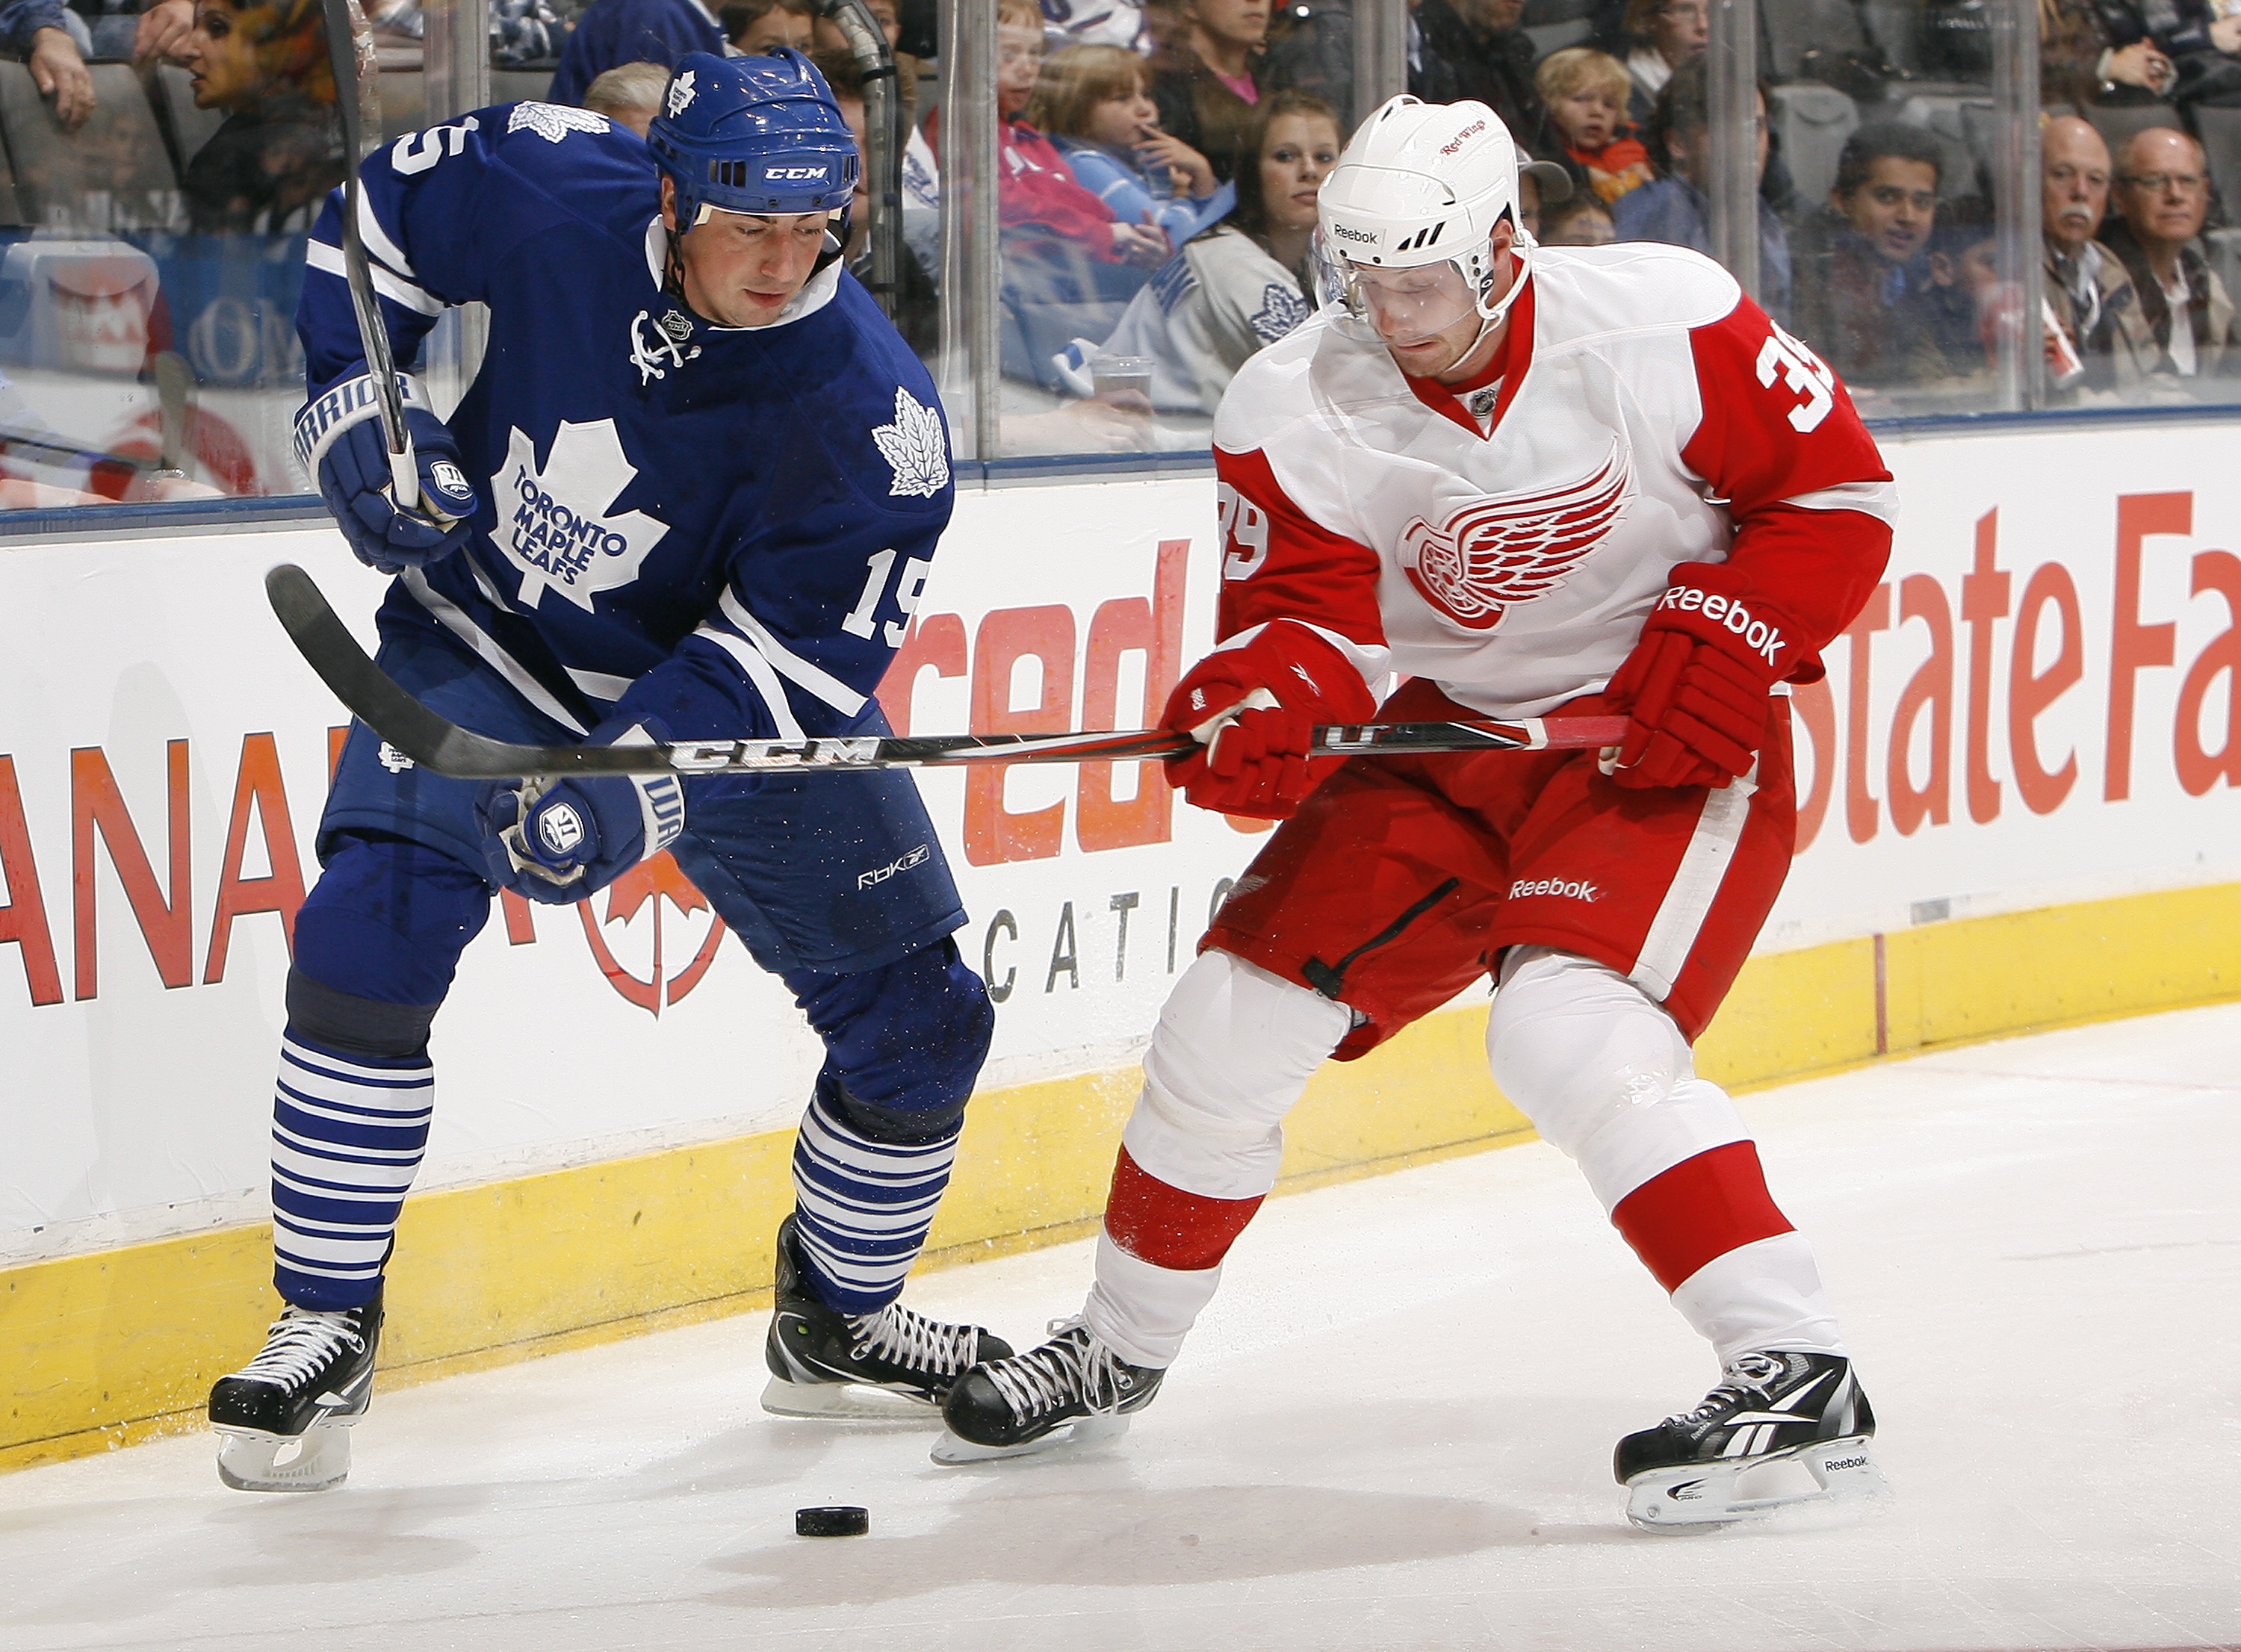 An Original Six matchup featuring two of the biggest teams from Canada and the United States? Yes, please.